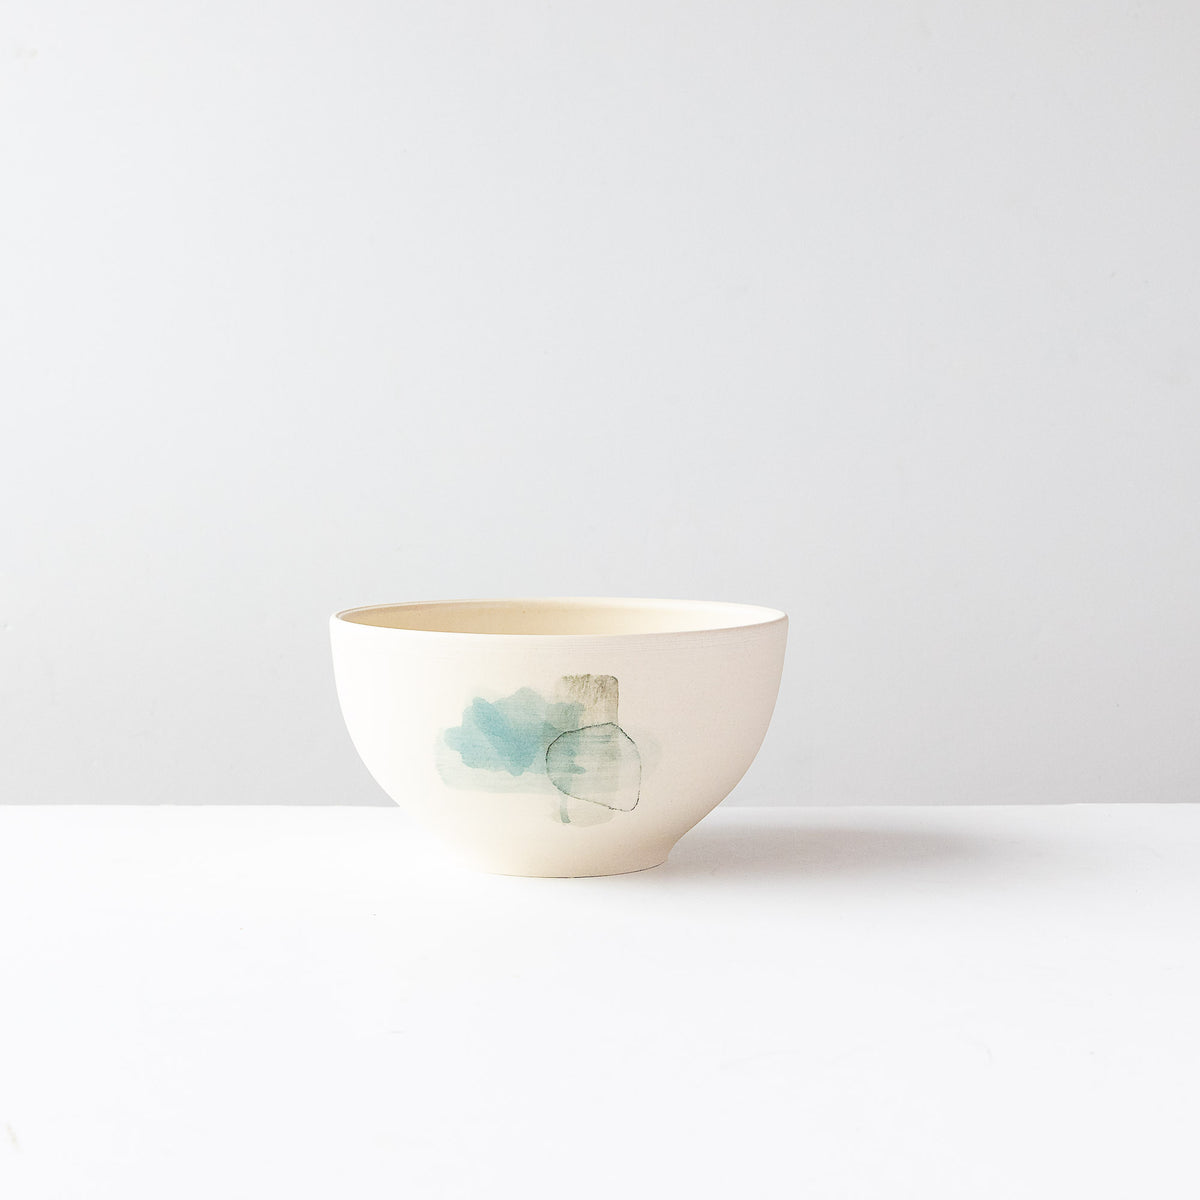 Blue Pattern - Large Hand Painted White Porcelain Bowl - Sold by Chic & Basta